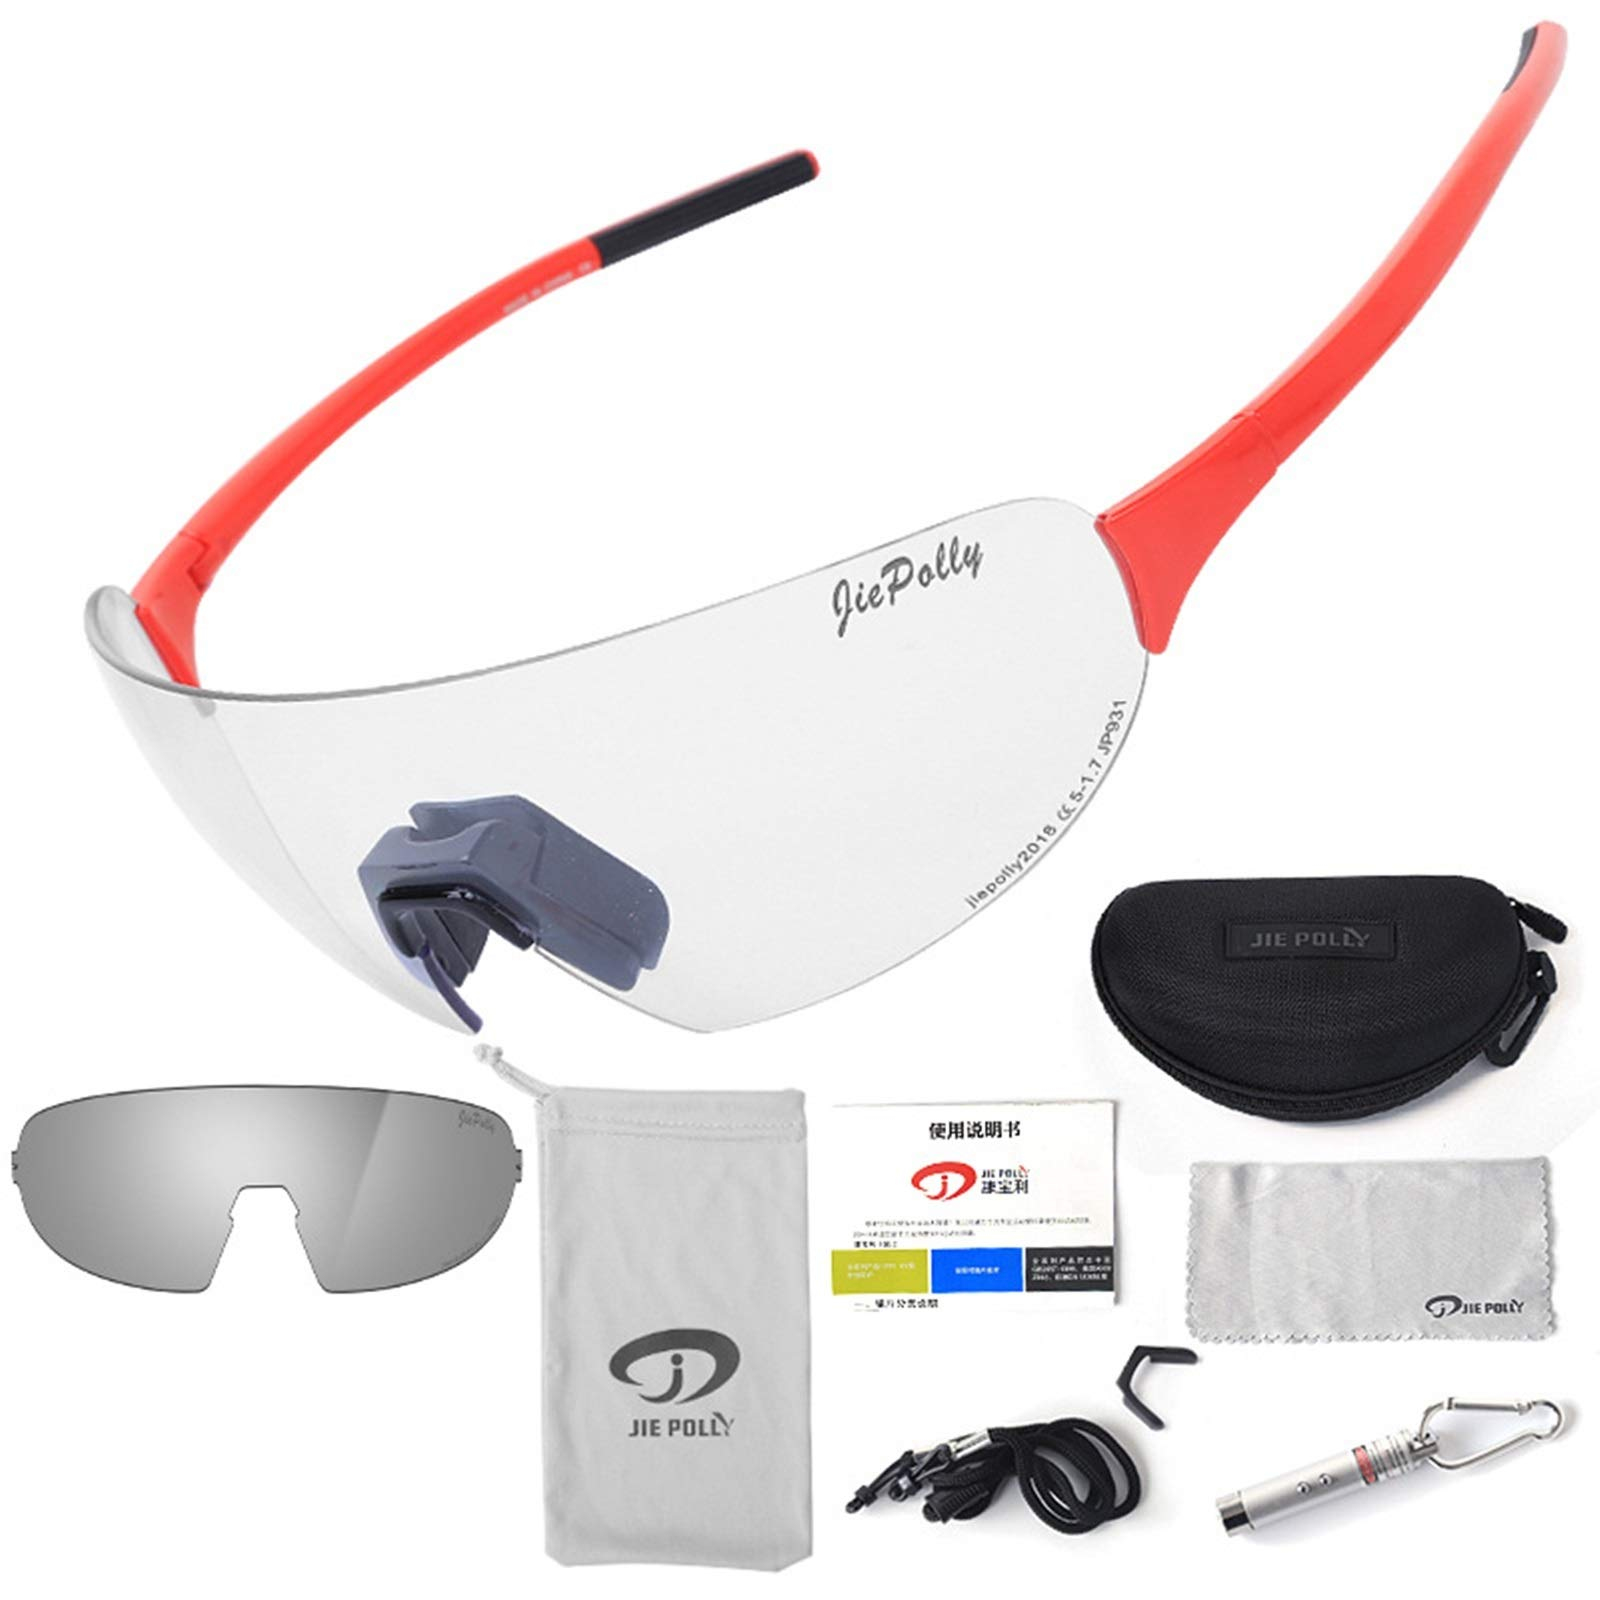 Adisaer Winter Cycling Glasses Outdoor Sports Riding Color-Changing Glasses Men and Women Running Fishing Bicycle Windproof Polarized Glasses Red Upgrade 1 for Adults